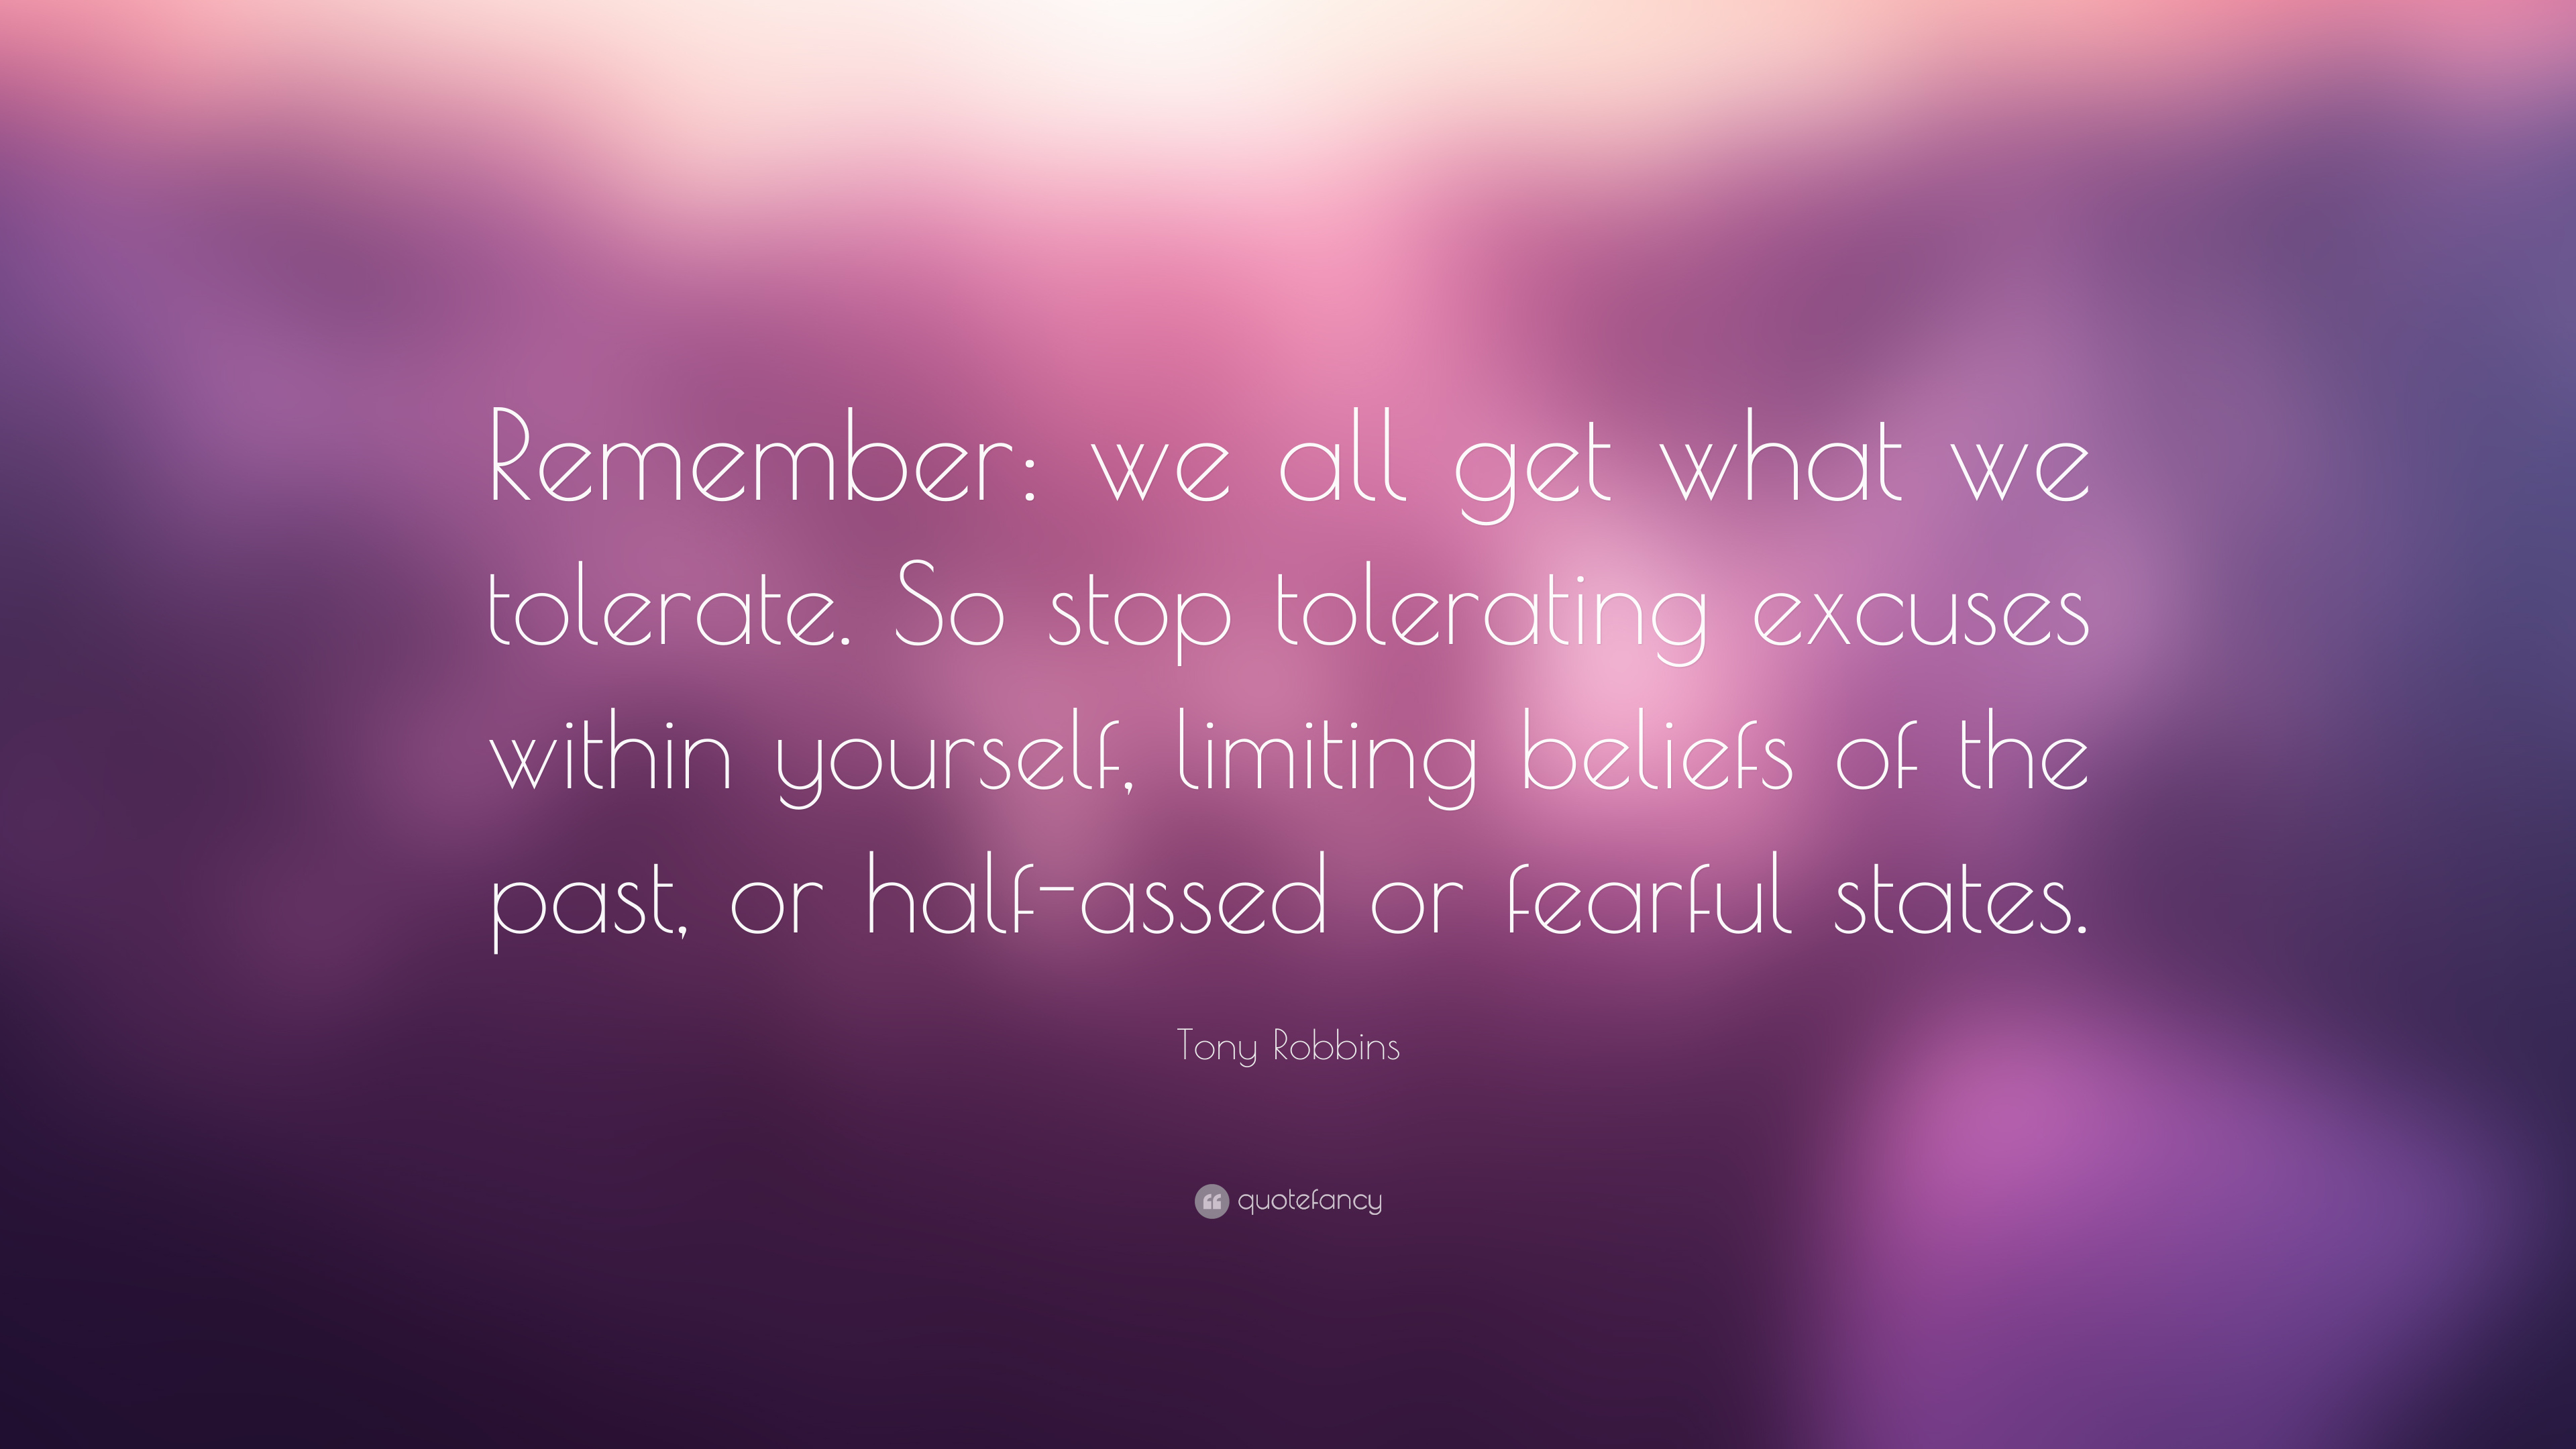 Tony Robbins Quote Remember We All Get What We Tolerate So Stop